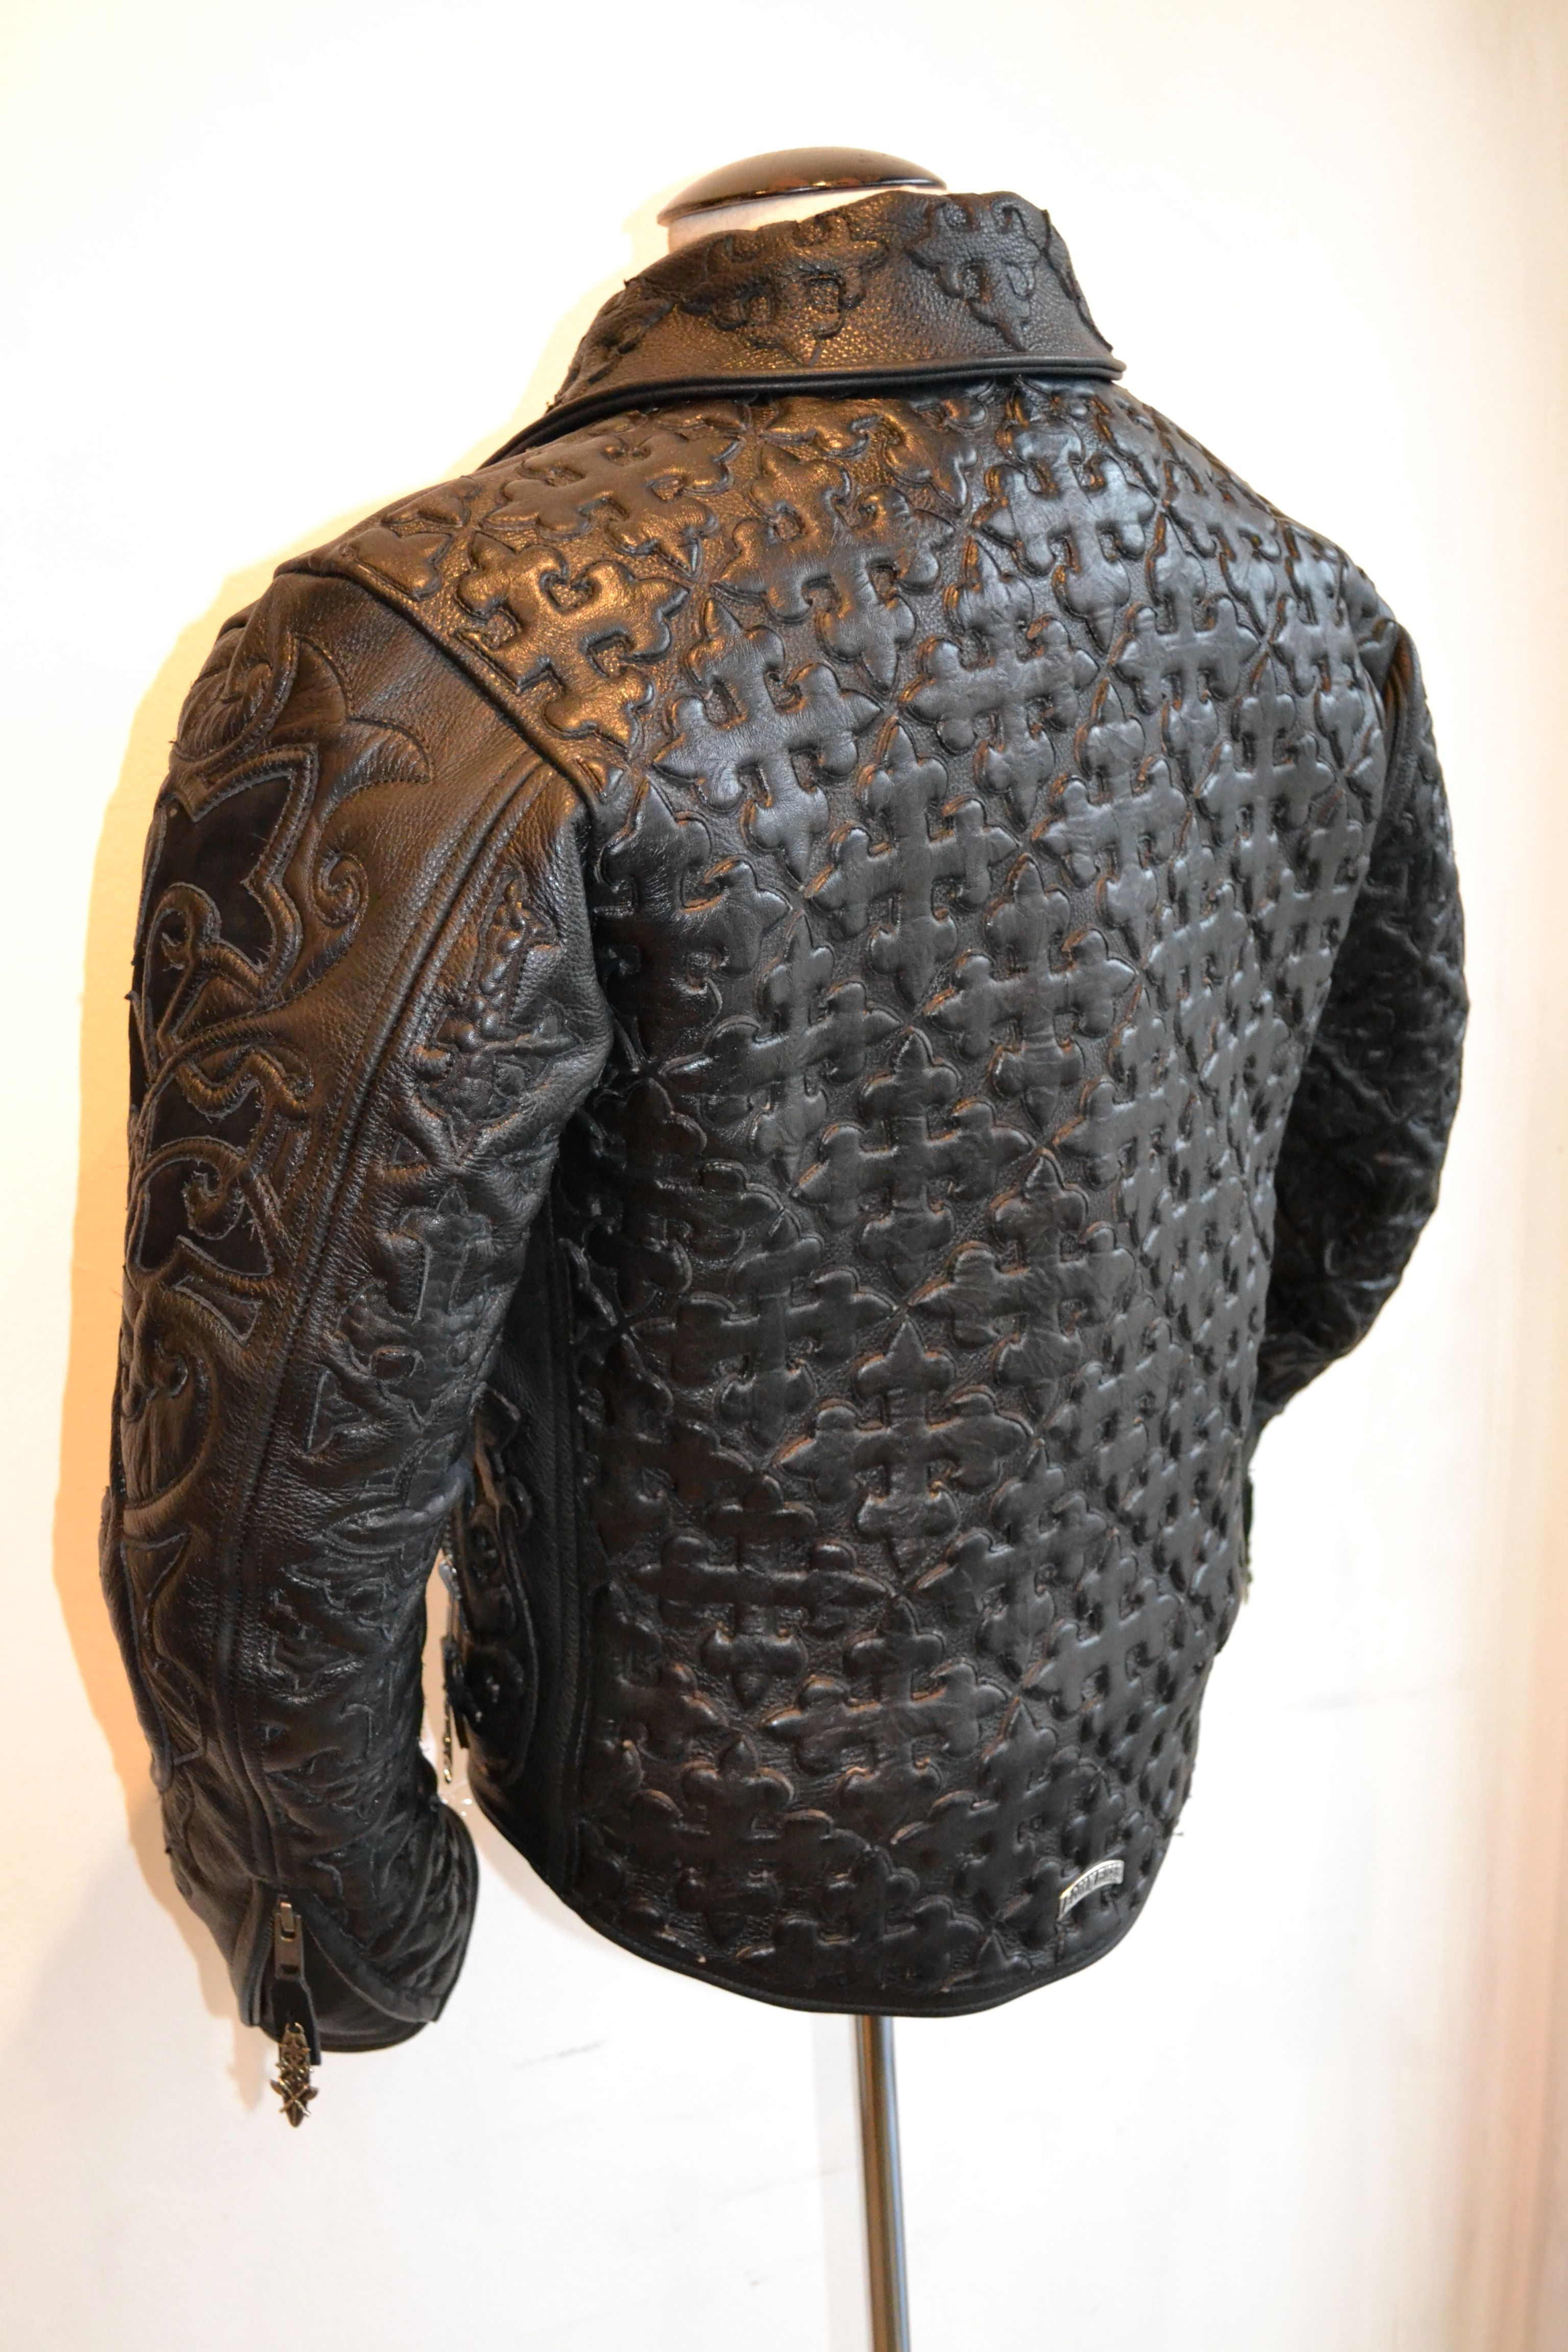 The Black, Leather Jacket by Logan Riese Brand leather